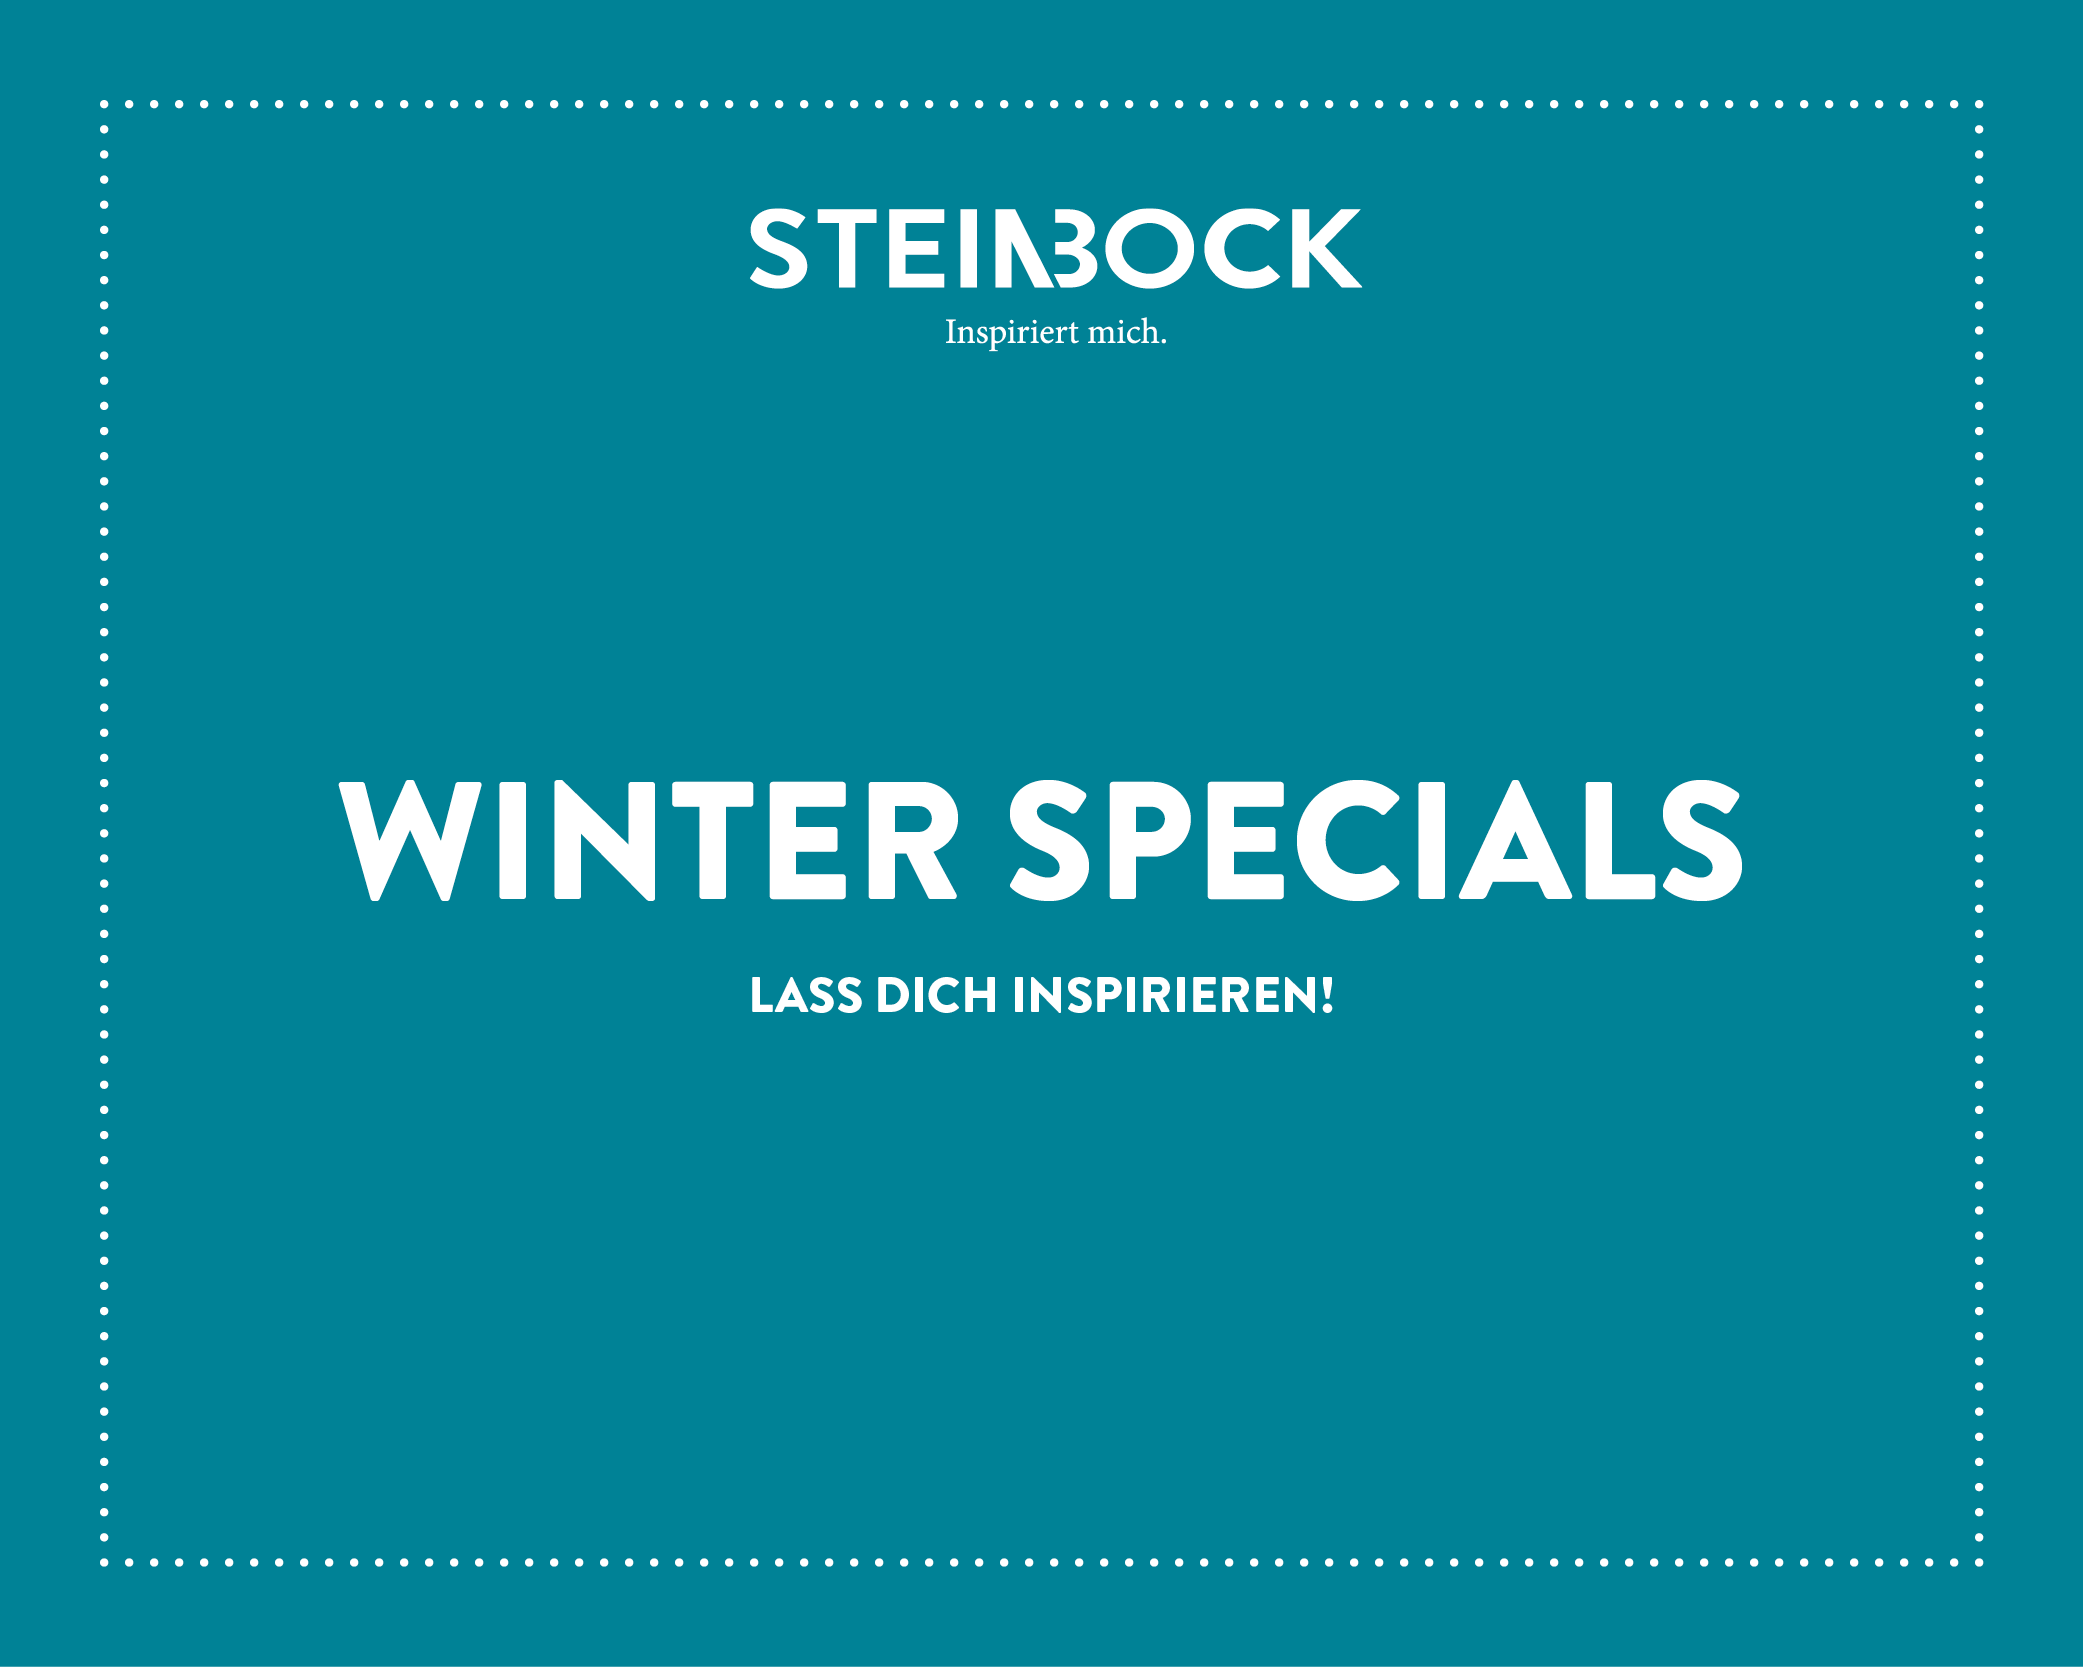 STEINBOCK – Winter Specials